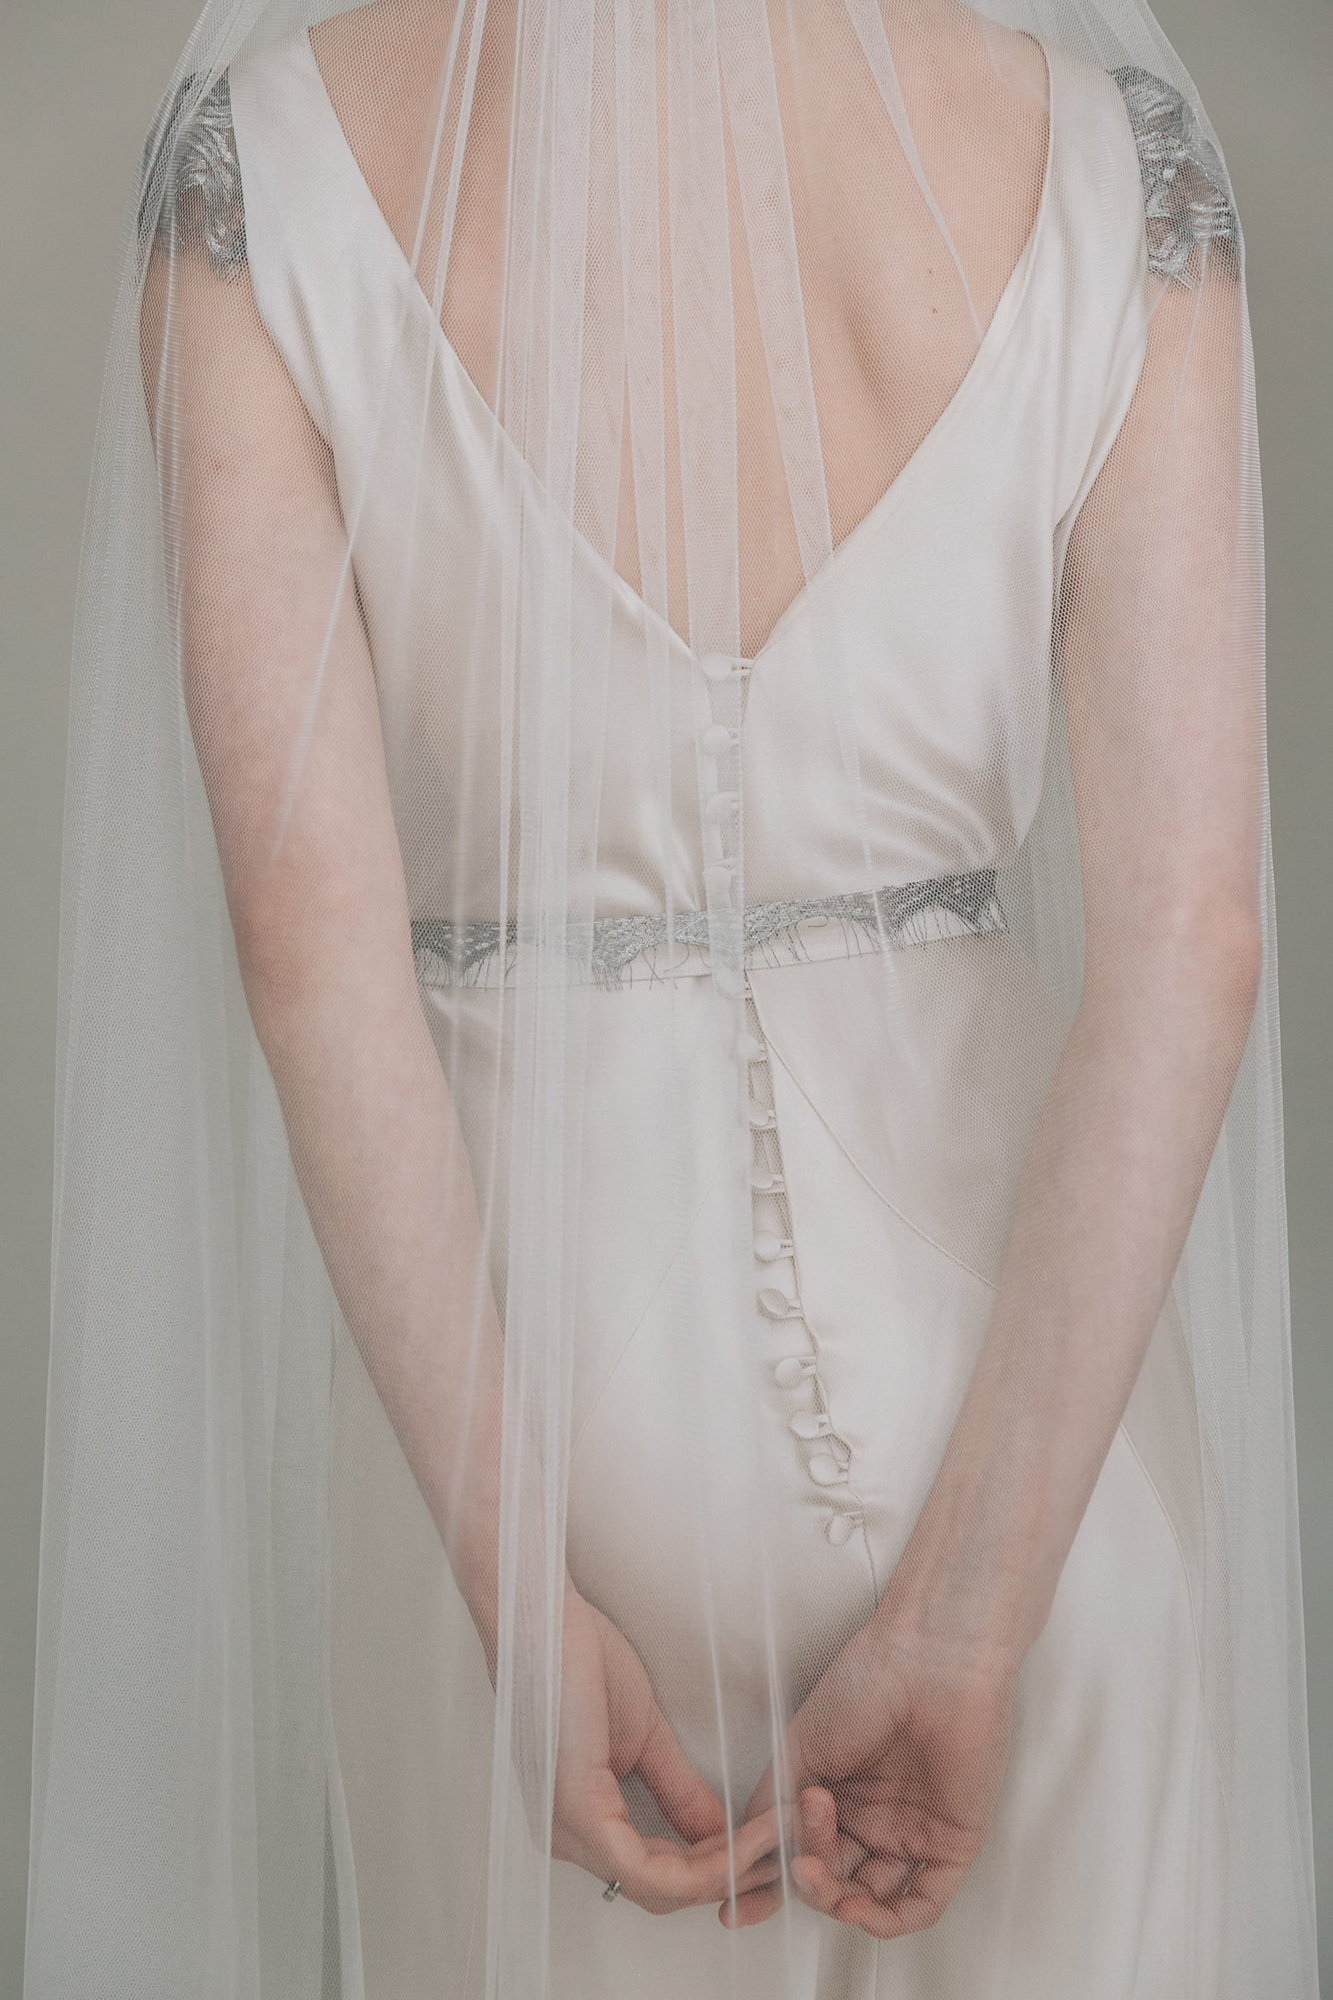 Kate-Beaumont-Sheffield-Picot-Edge-Silky-Tulle-Ethereal-Veil-5.jpg